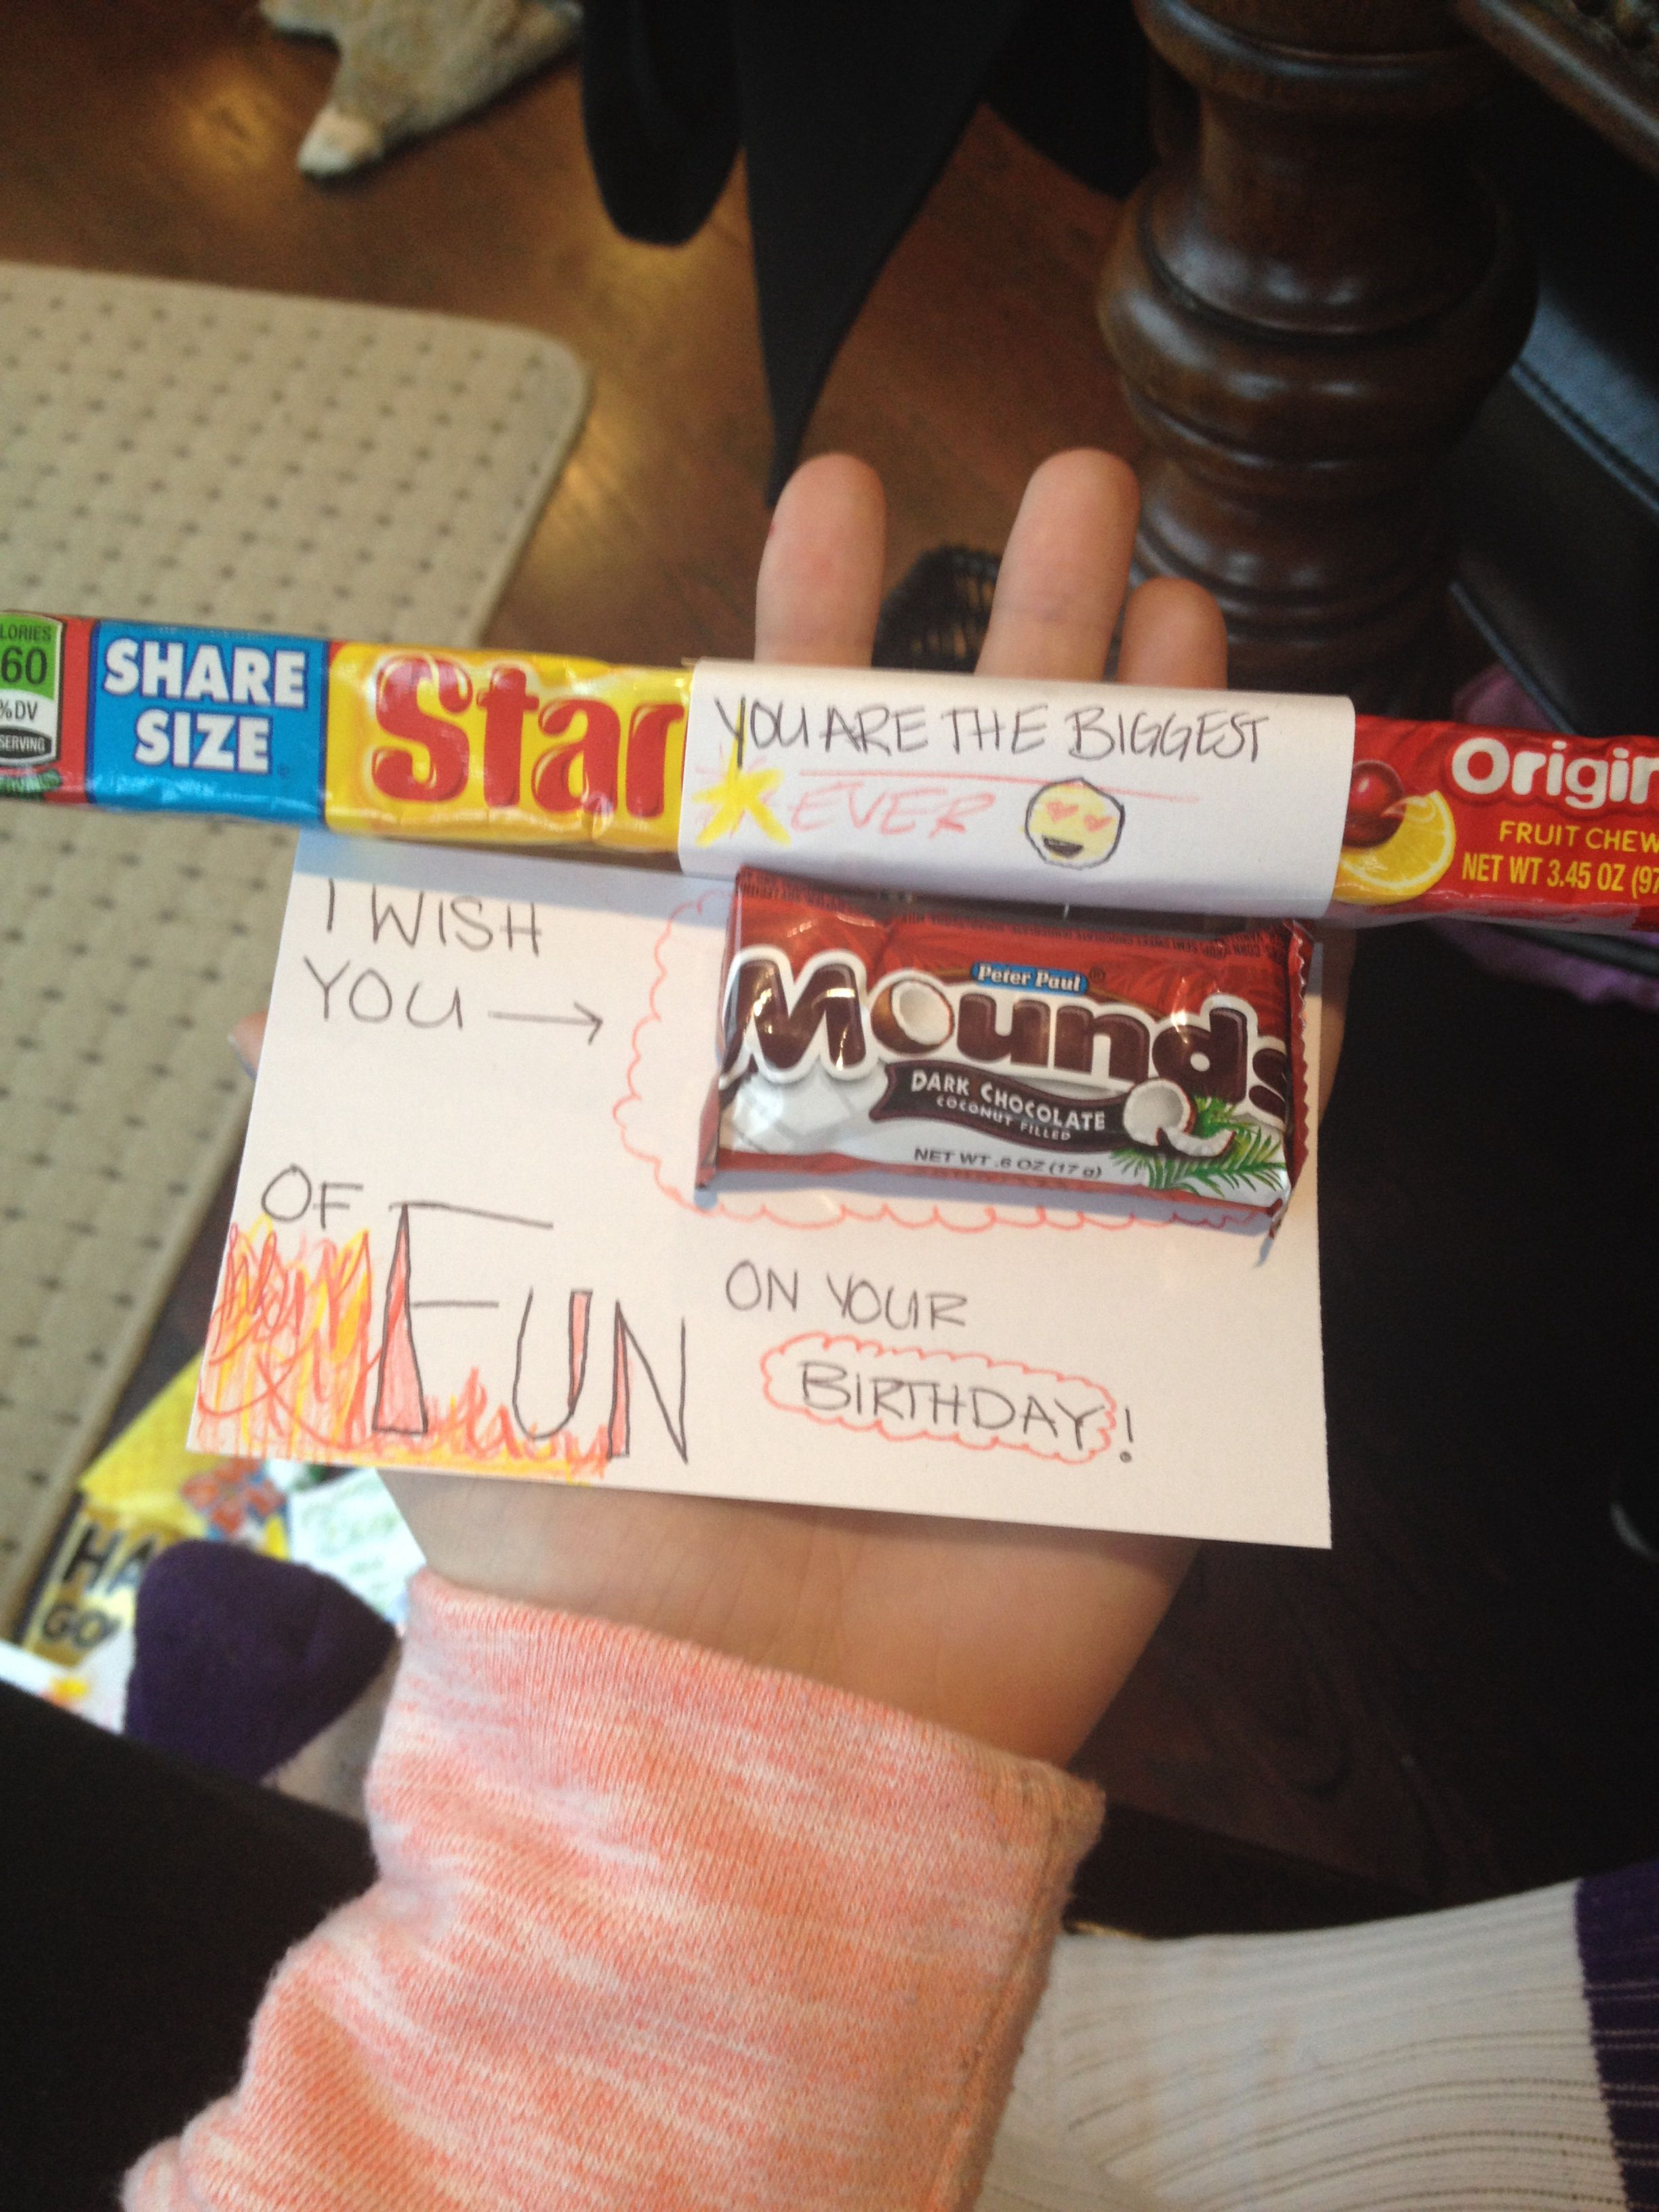 Long distance relationship, care package for my boyfriend